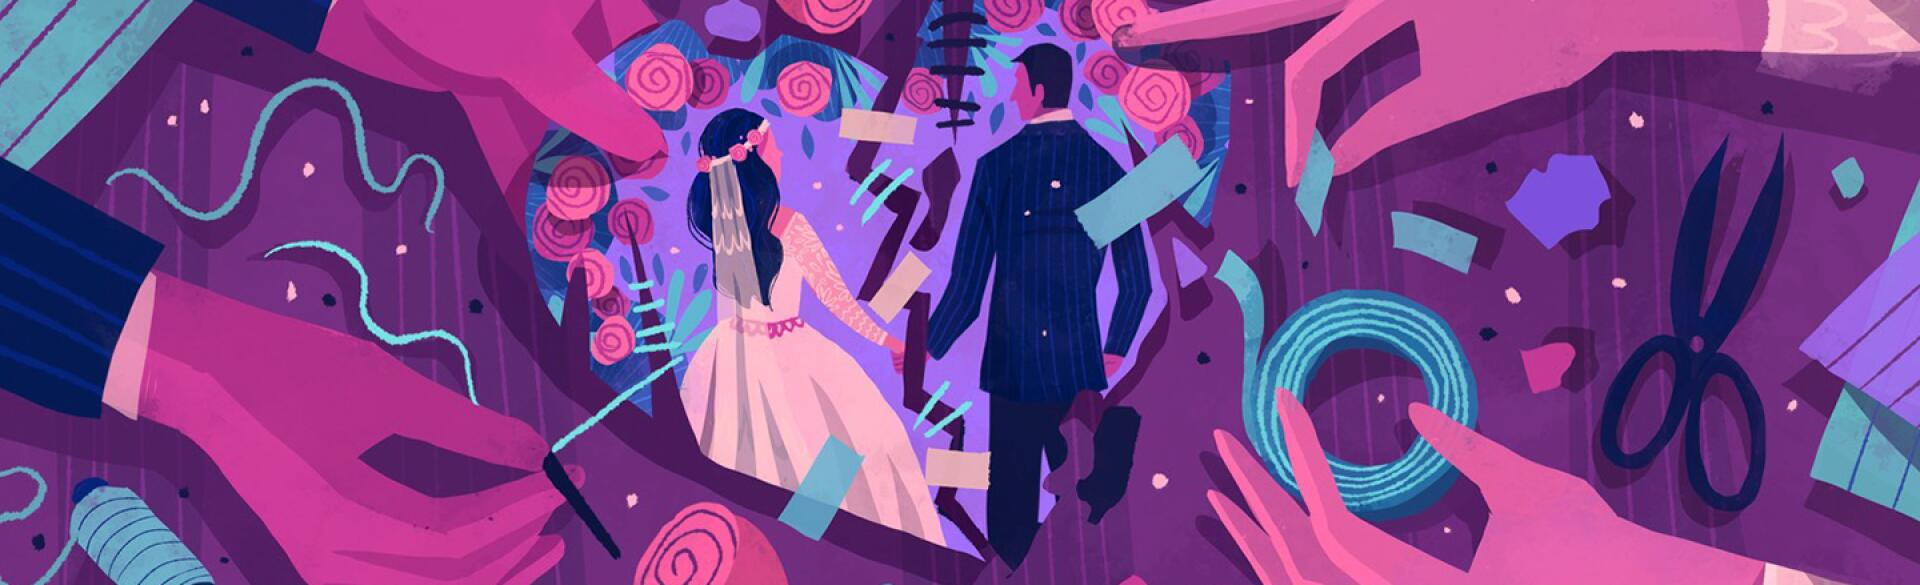 illustration_of_couple_fixing_their_marriage_picture_together_by_chaaya_prabhat_1440x584.jpg